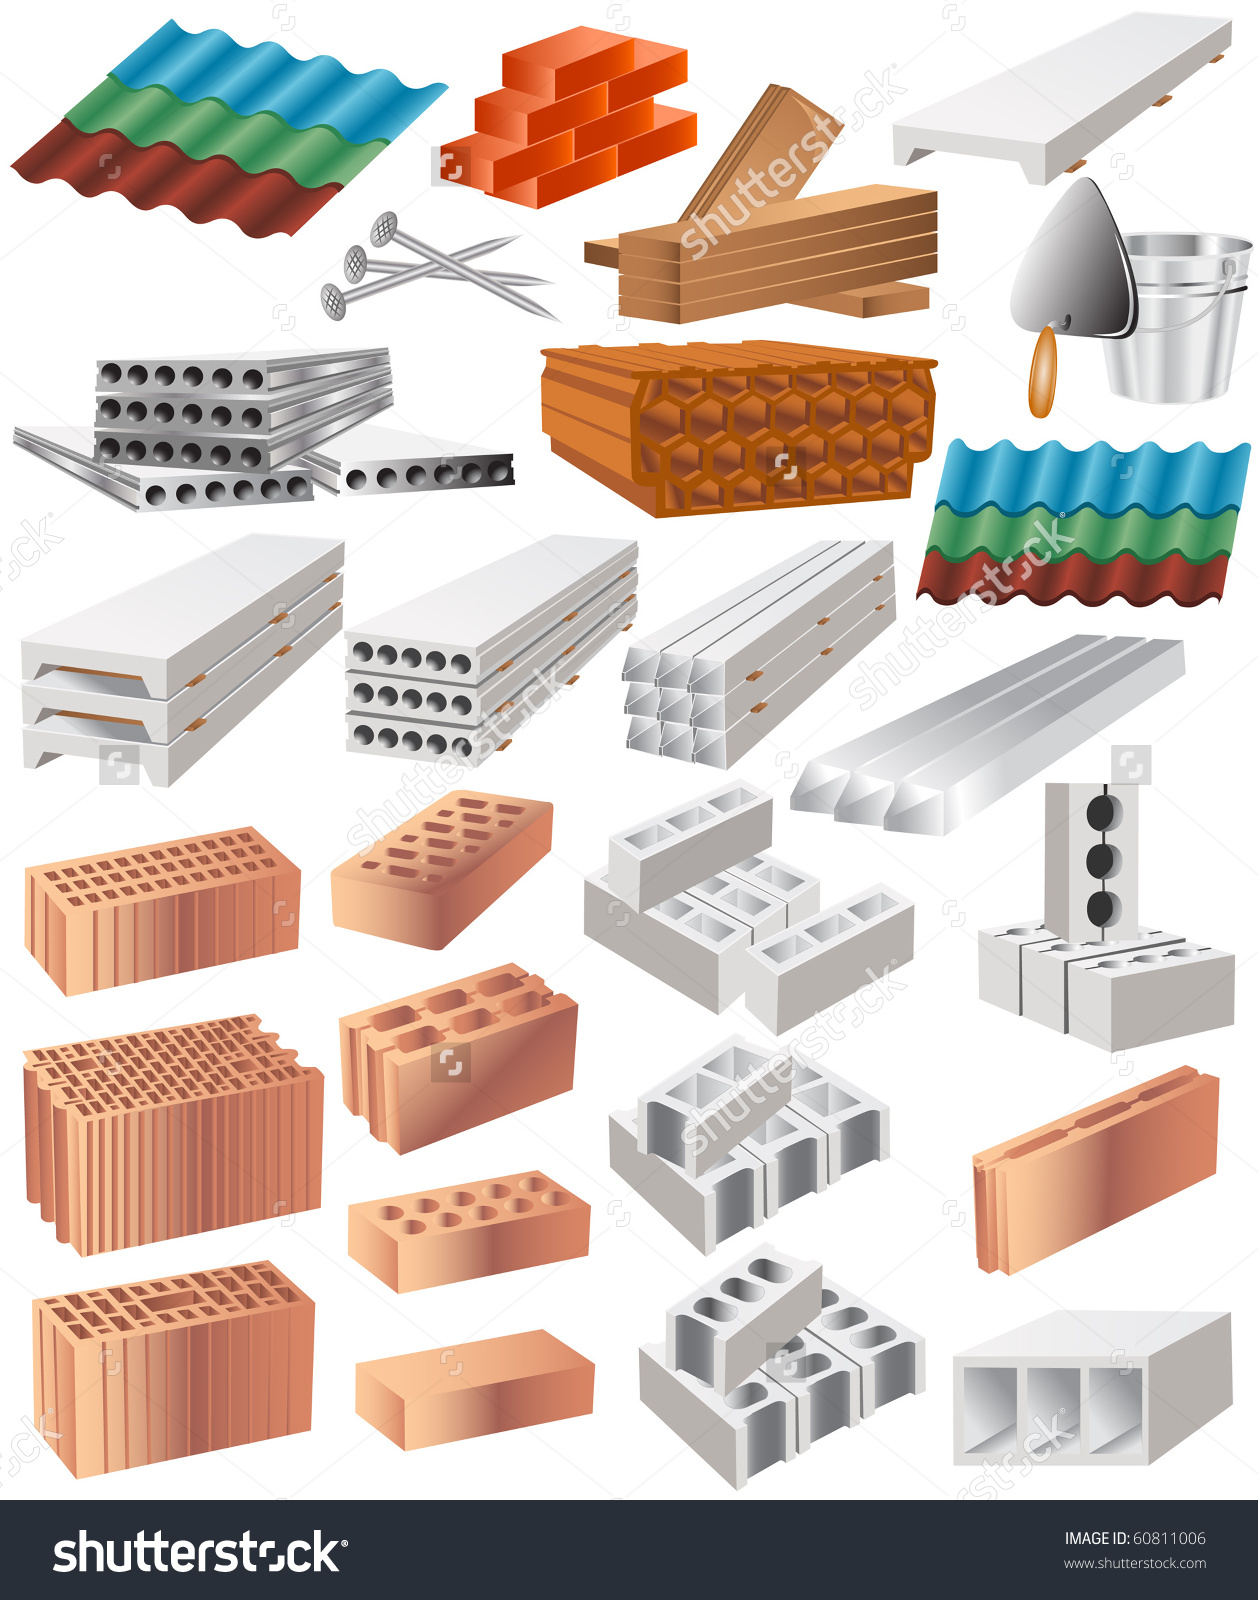 Building material clipart - Clipground